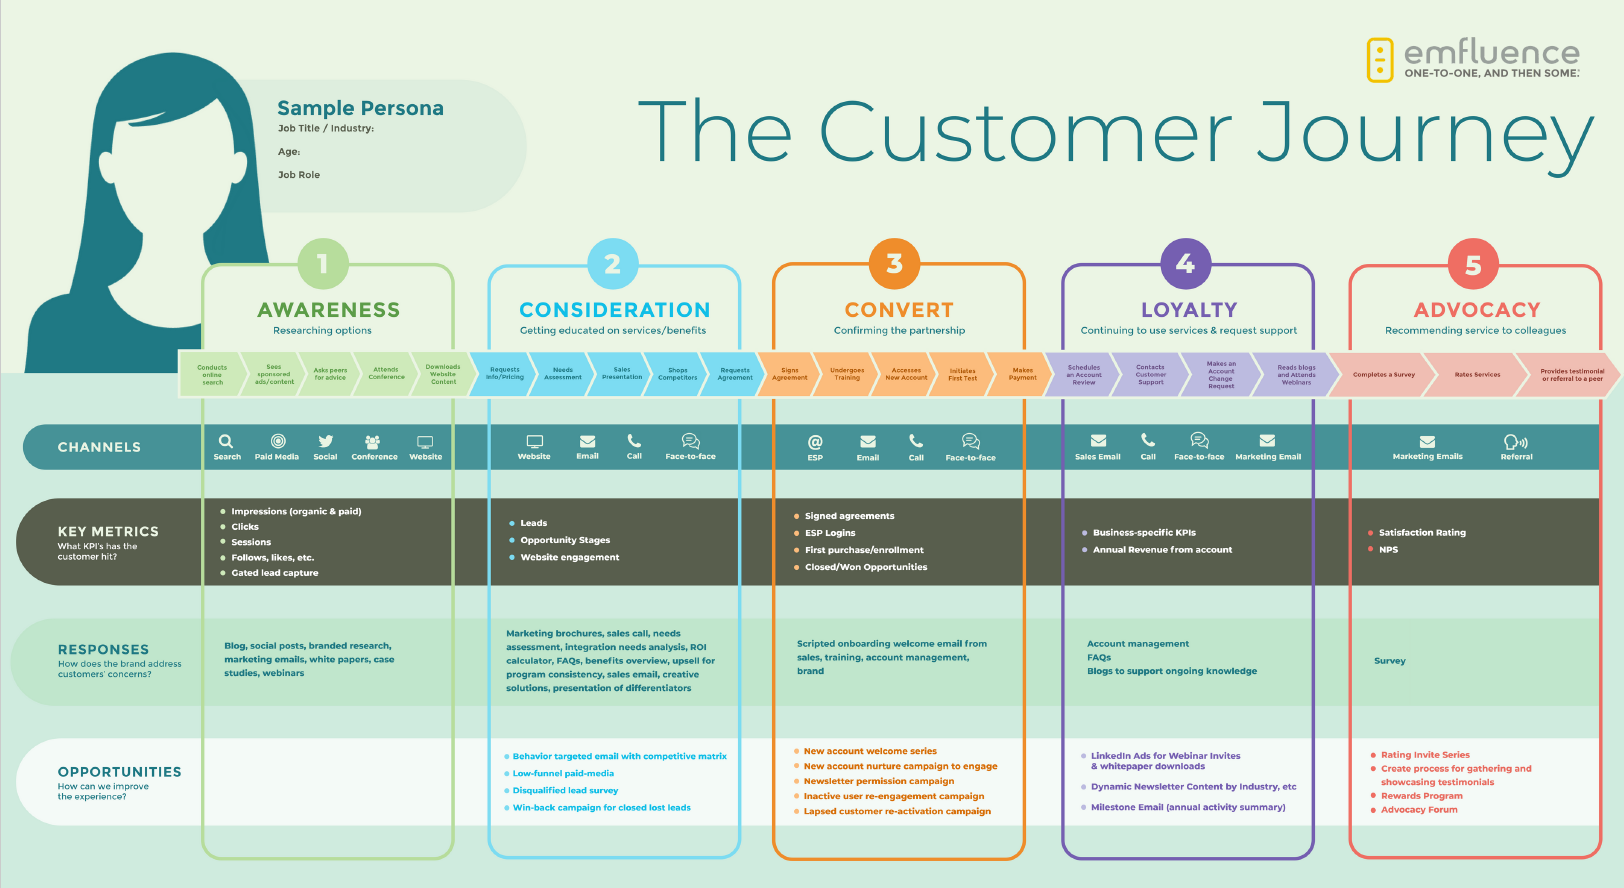 Customer Journey emfluence